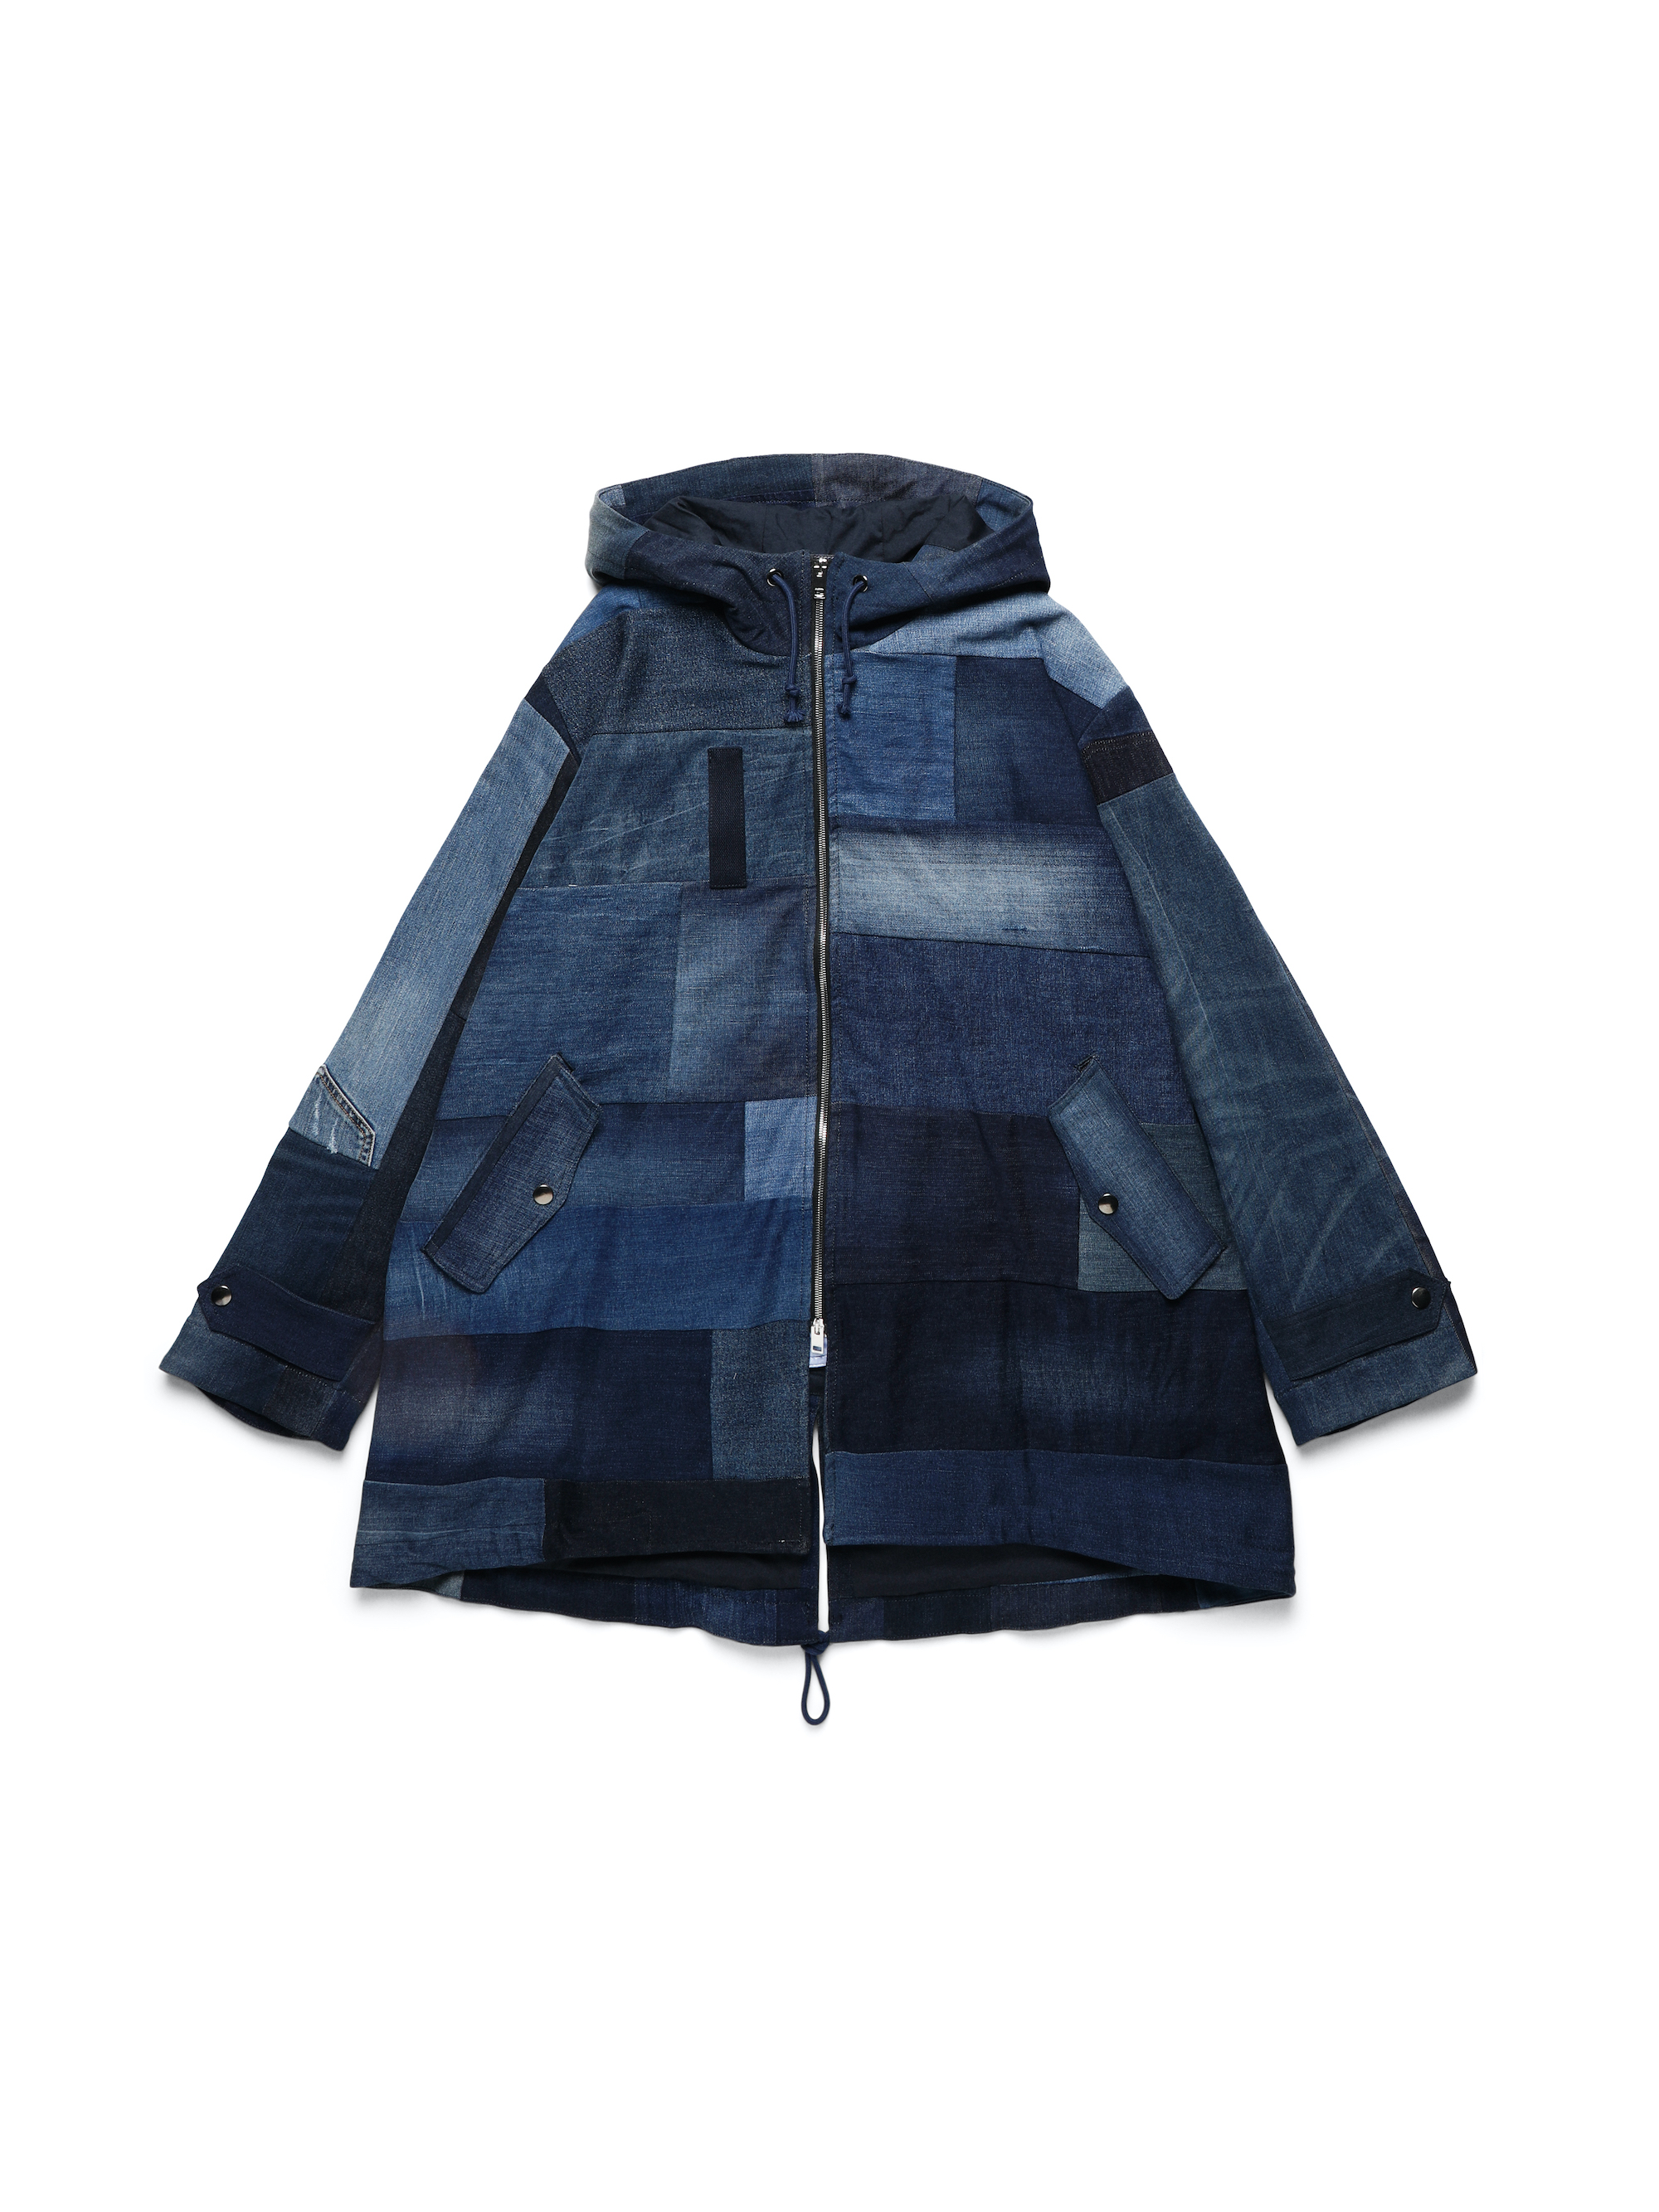 DIESEL UPCYCLING FOR 55DSL dark blue demin coat